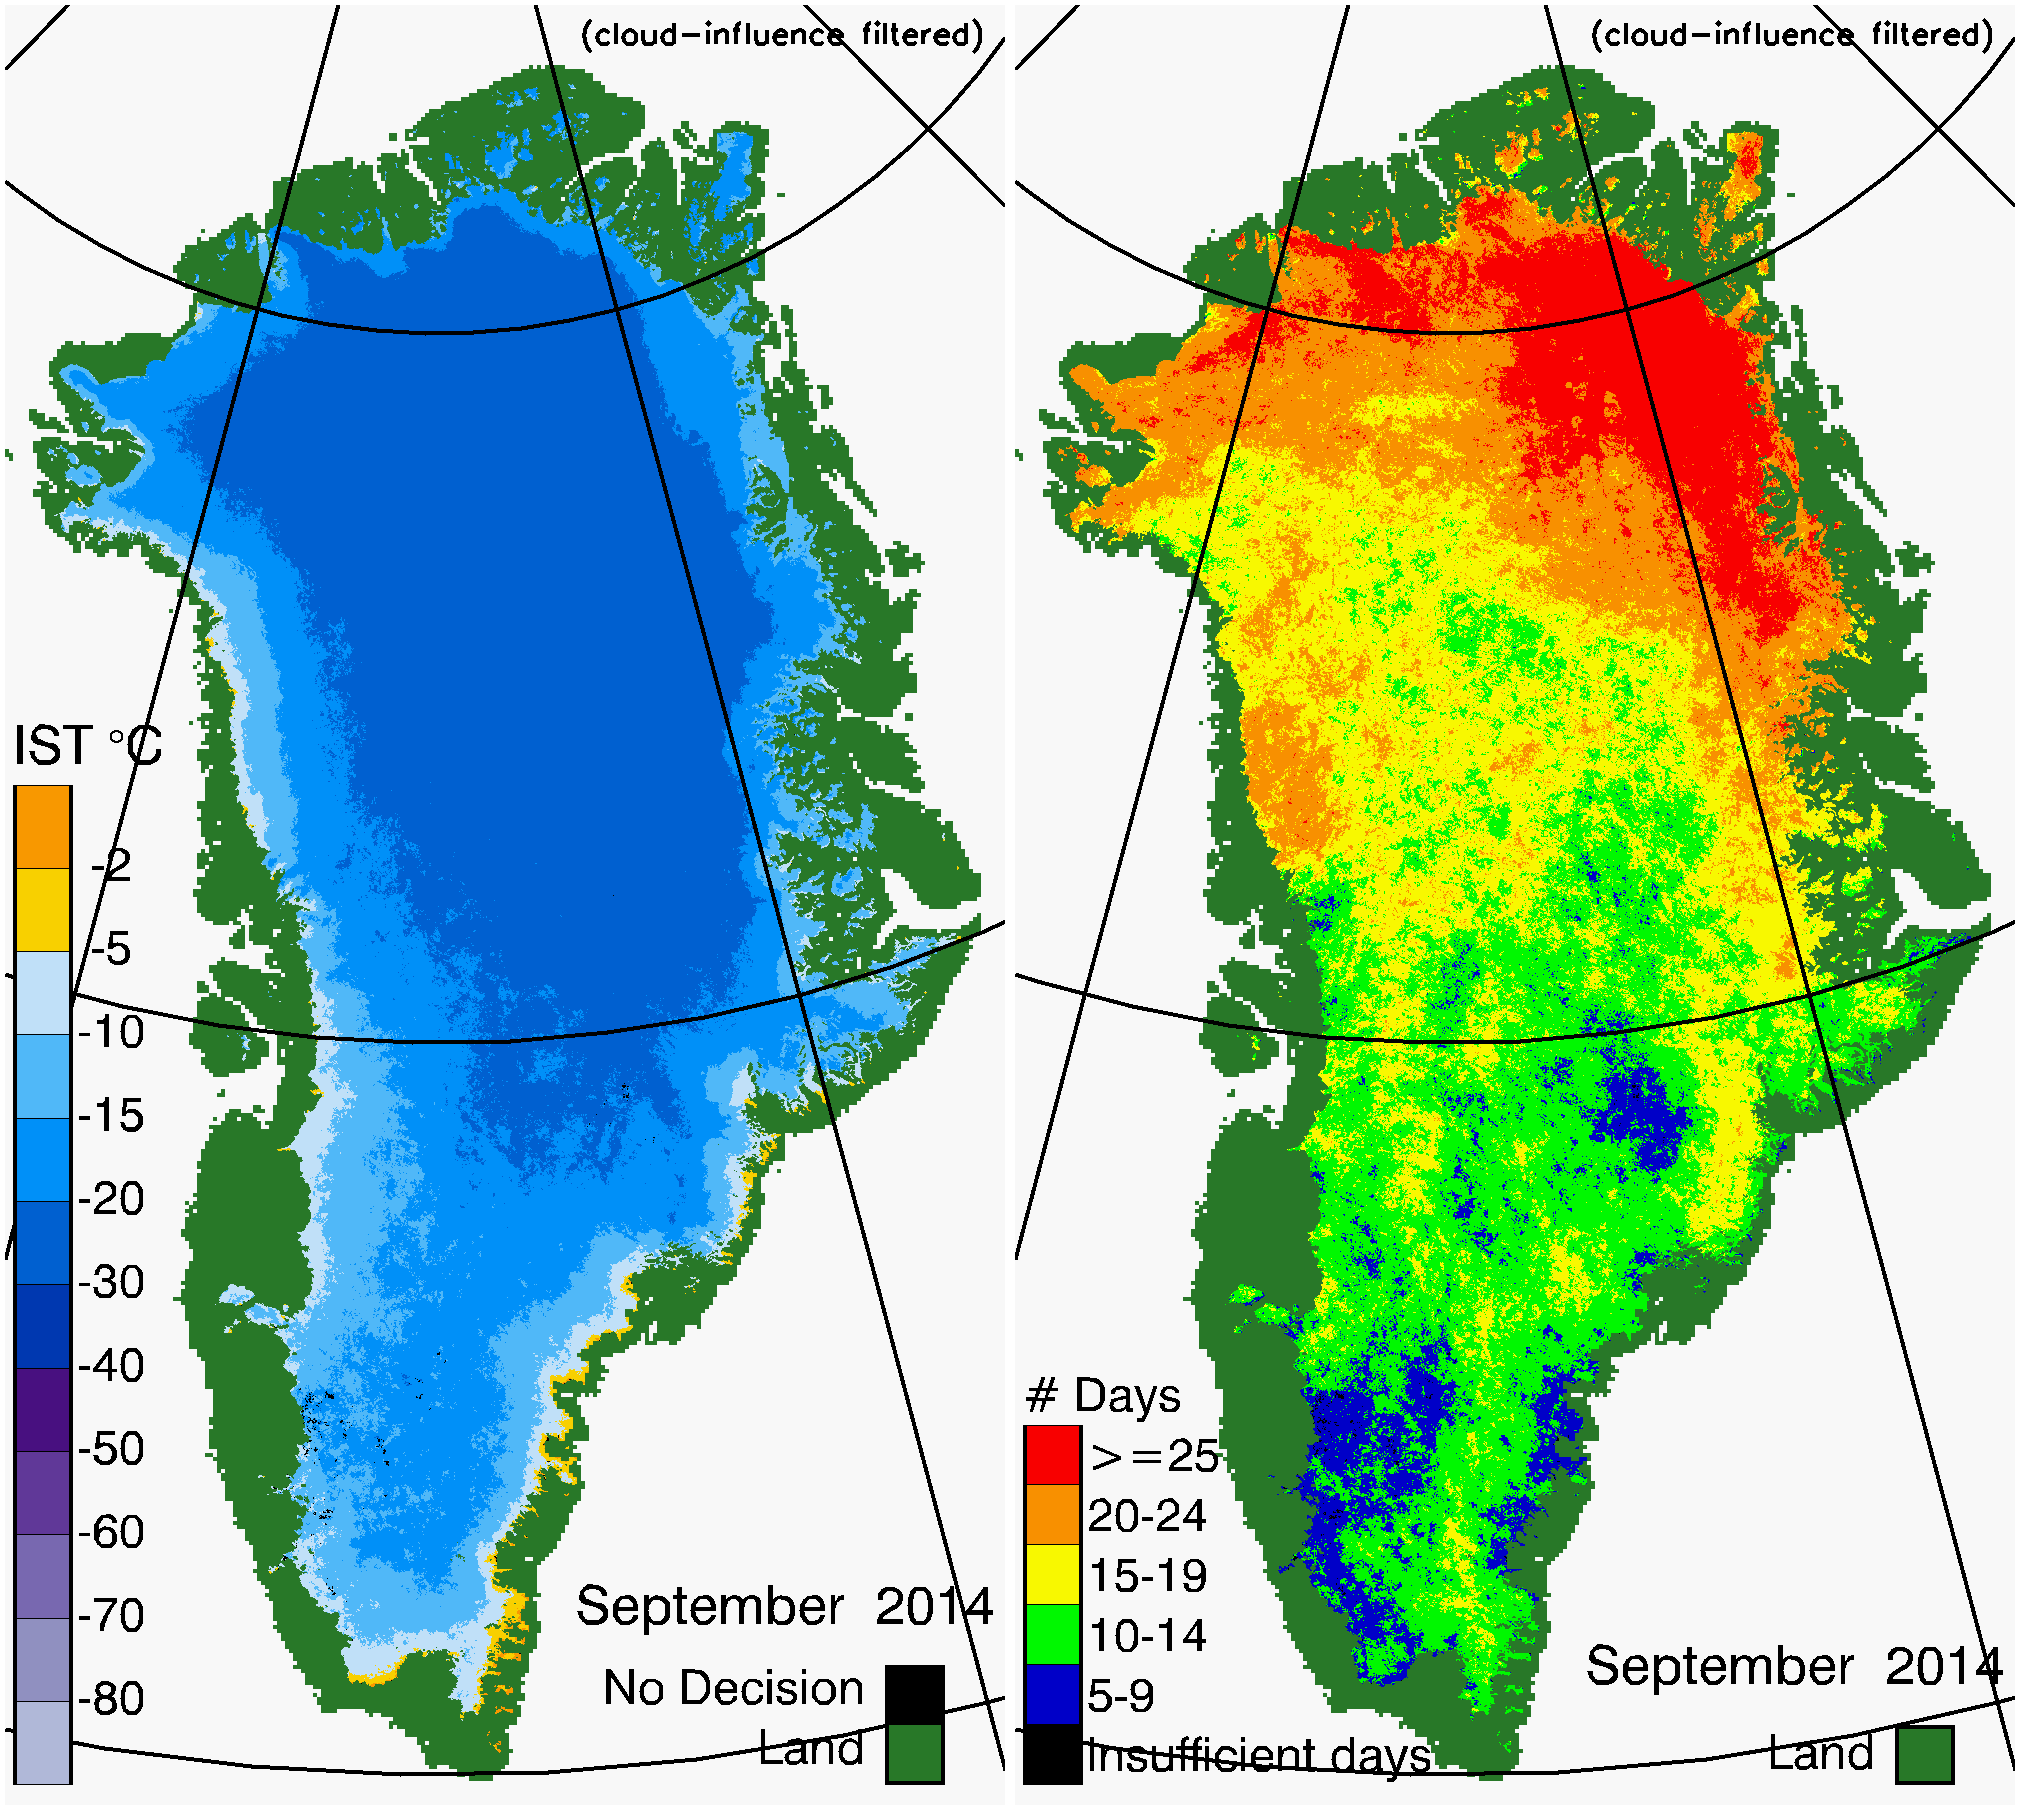 Greenland Surface Temp 09/2014